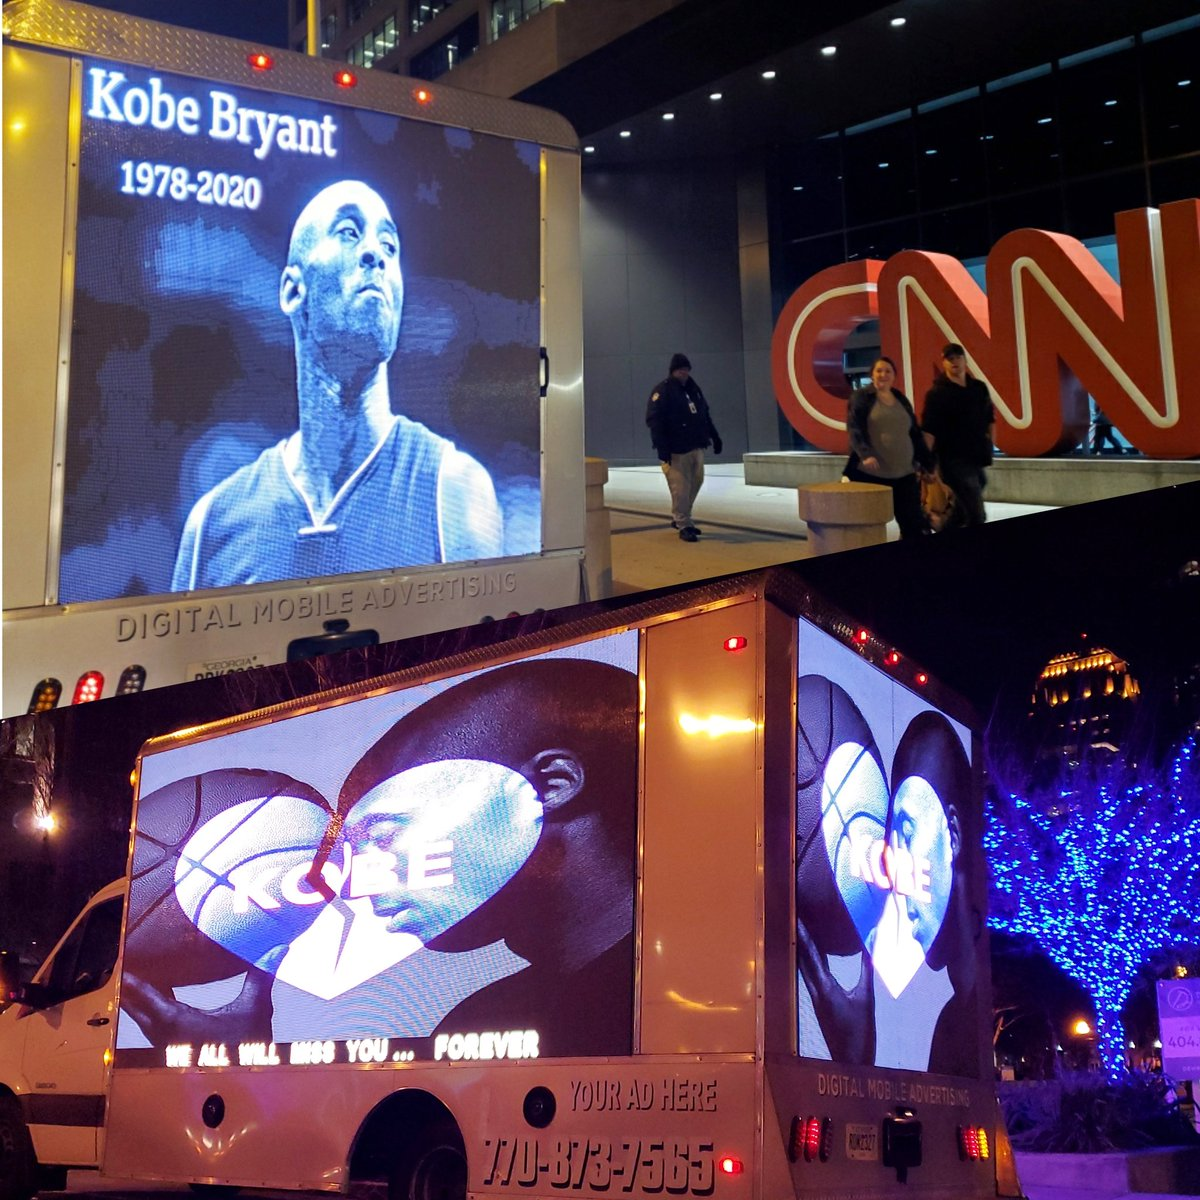 My prayers and heart go out to the entire #kobebryant family, Friends and #lakerfans #allaroundtheworld  #restinpeace #kobe , #wewillallmissyou Forever....